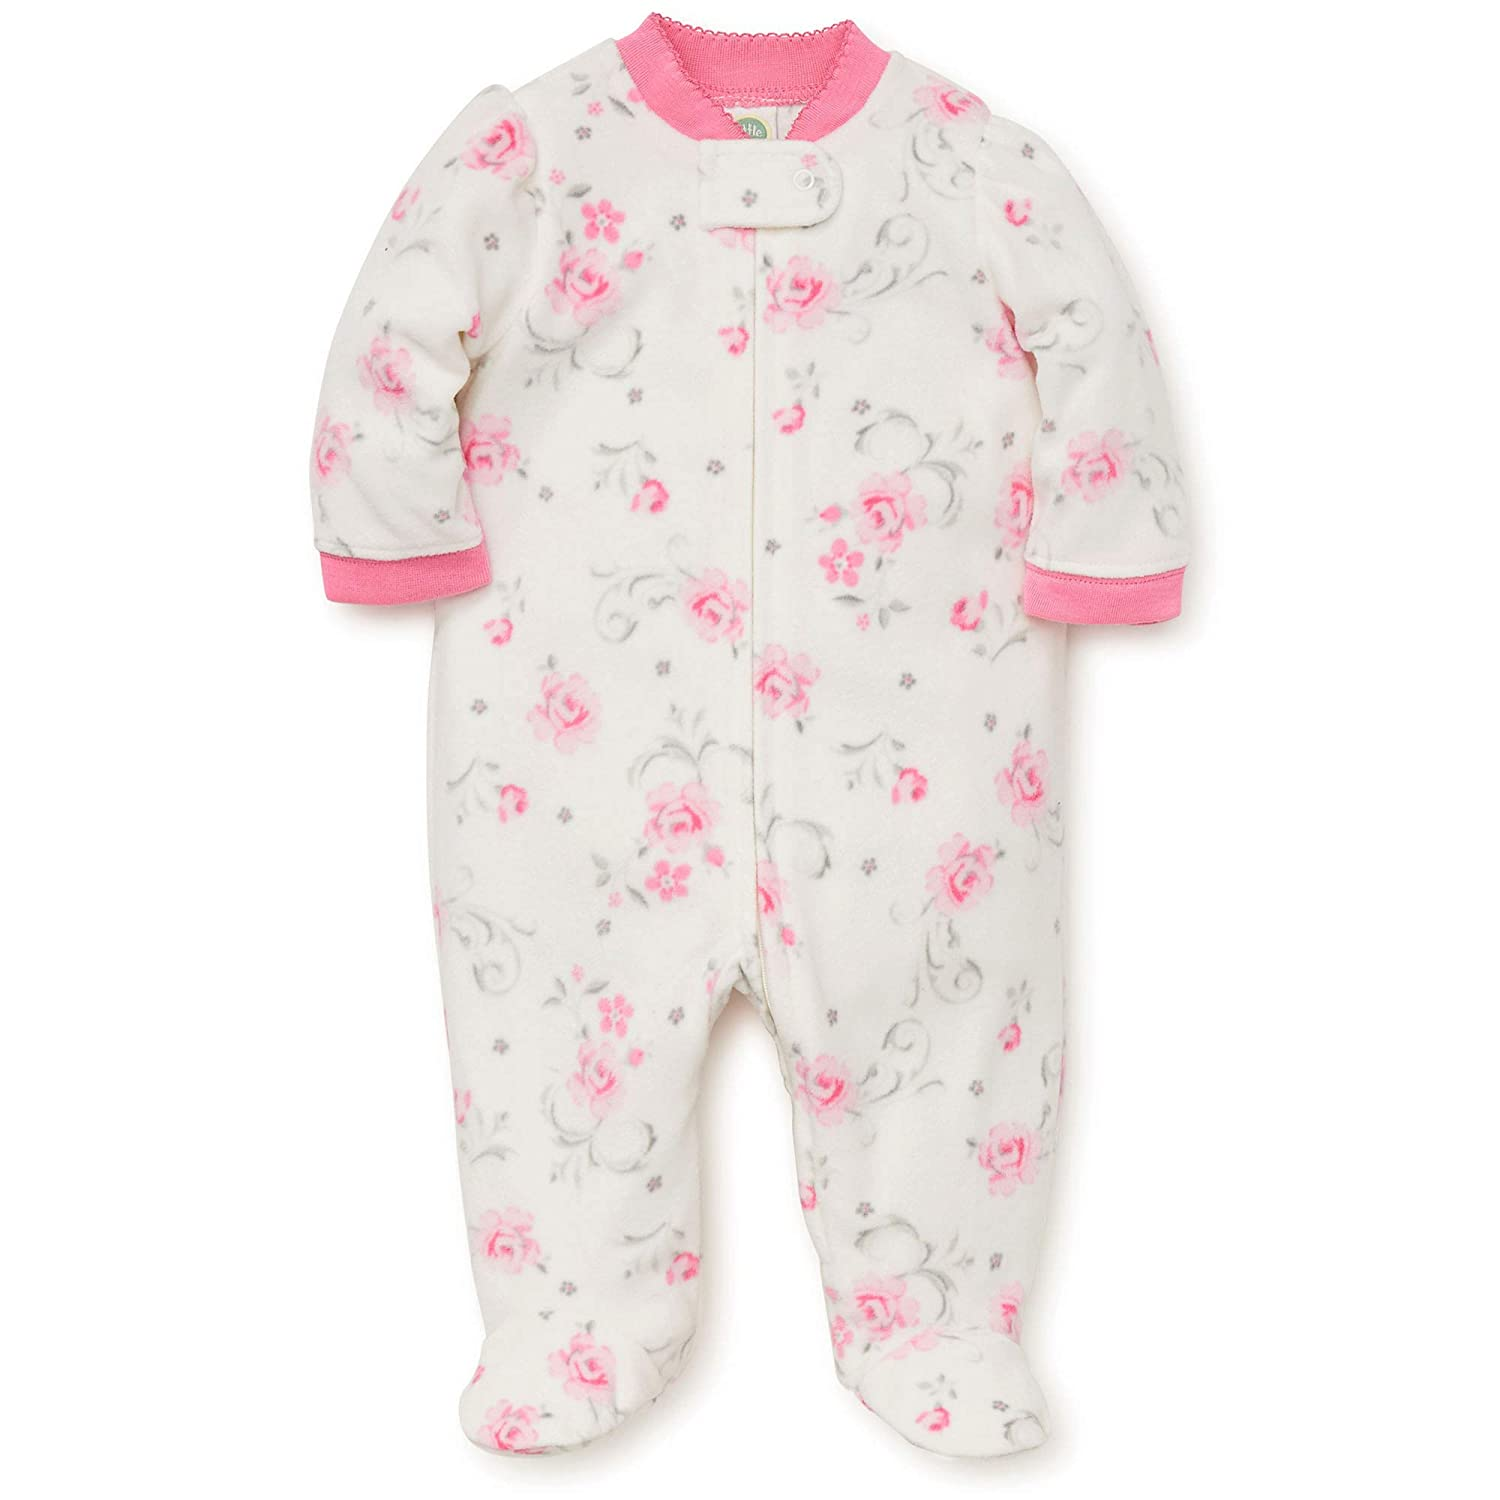 Amazon.com: Little Me Warm Fleece Baby Pajamas Footed Blanket Sleeper Footie Rose Ivory 3 Months: Baby